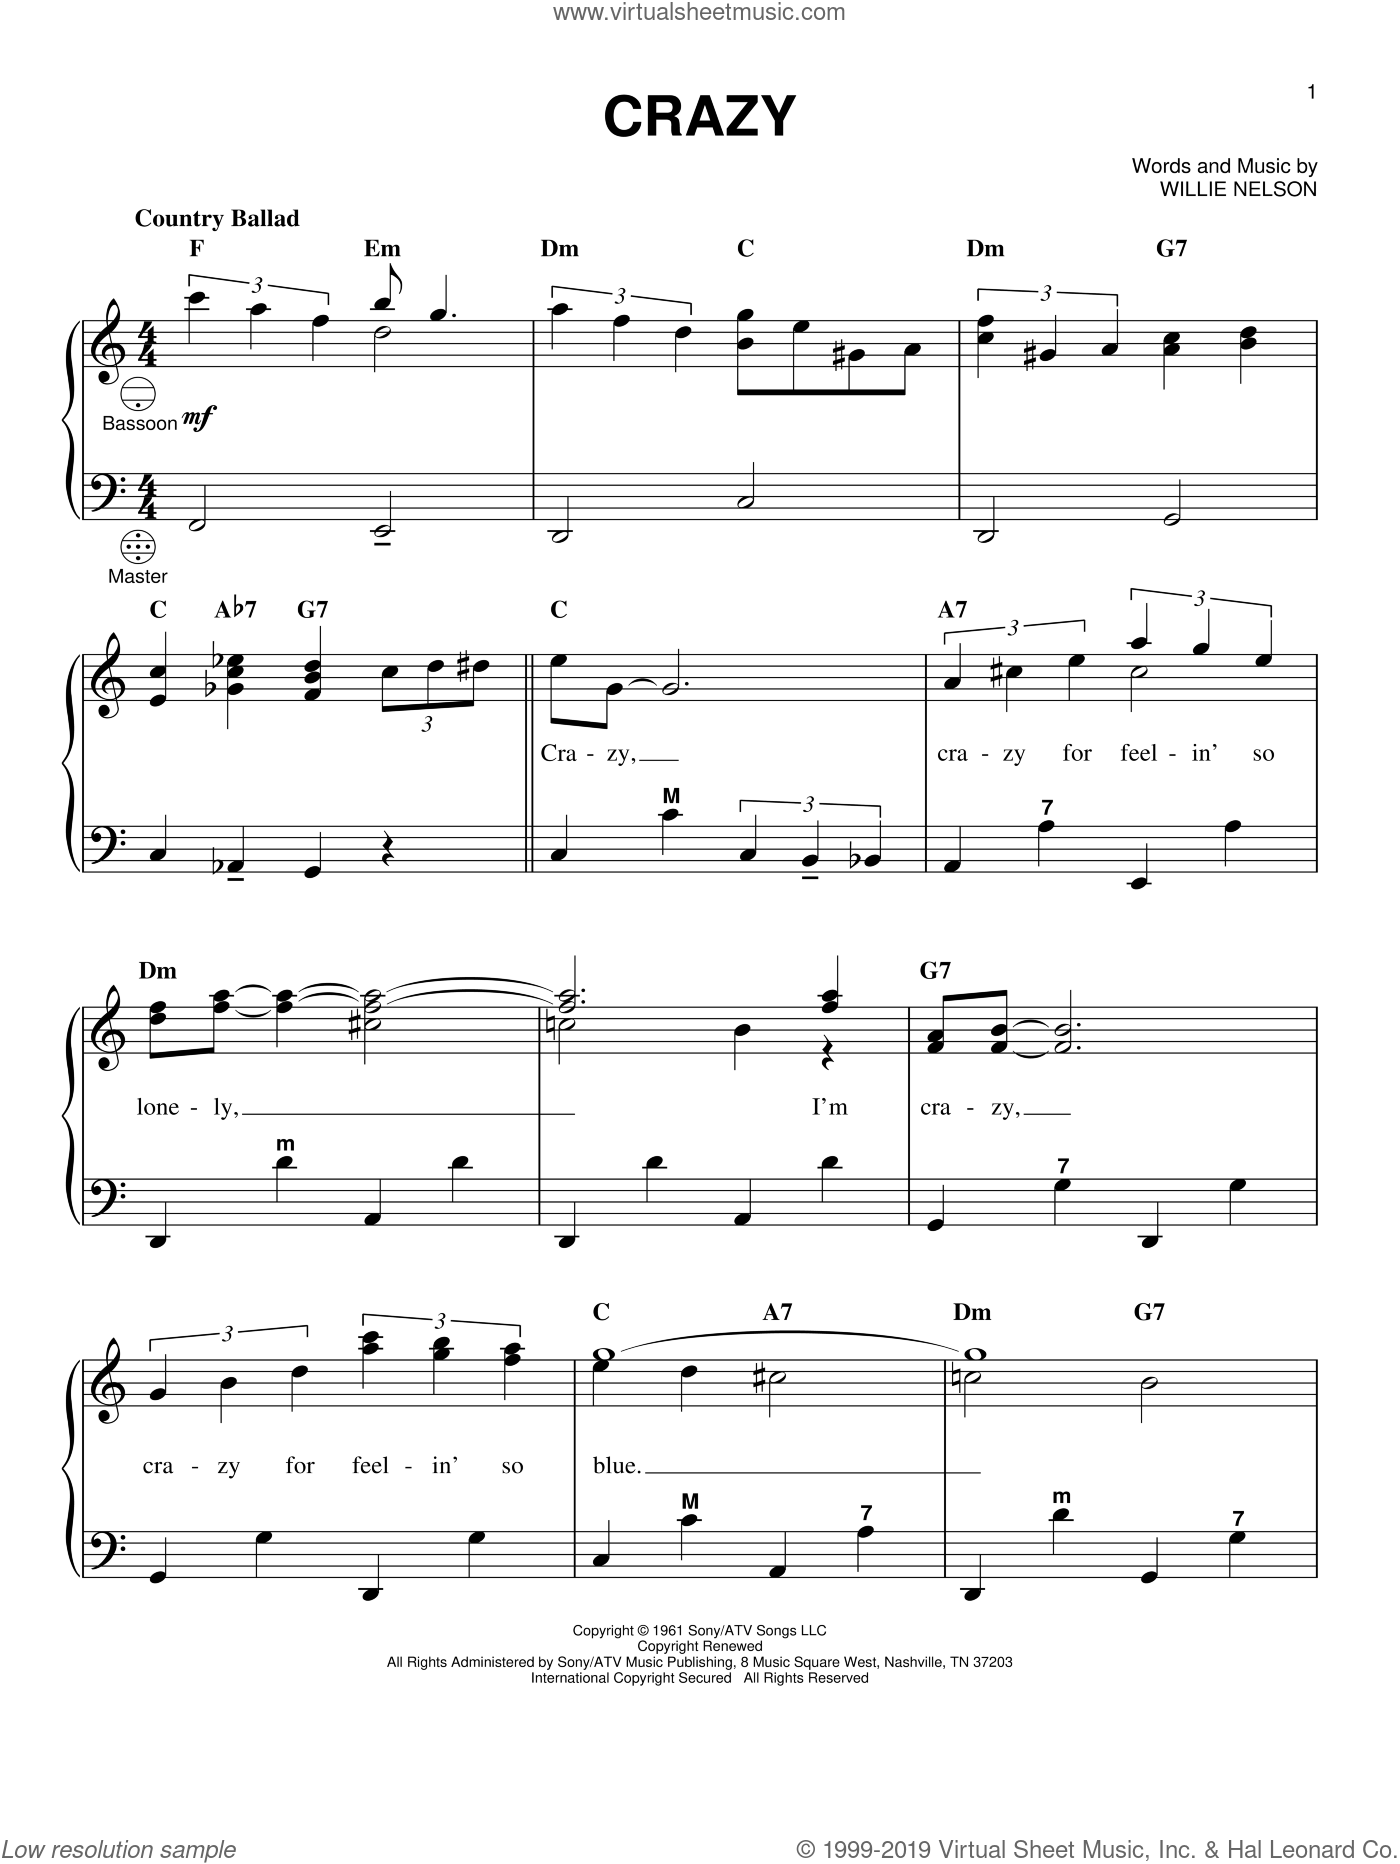 Crazy sheet music for accordion by Willie Nelson